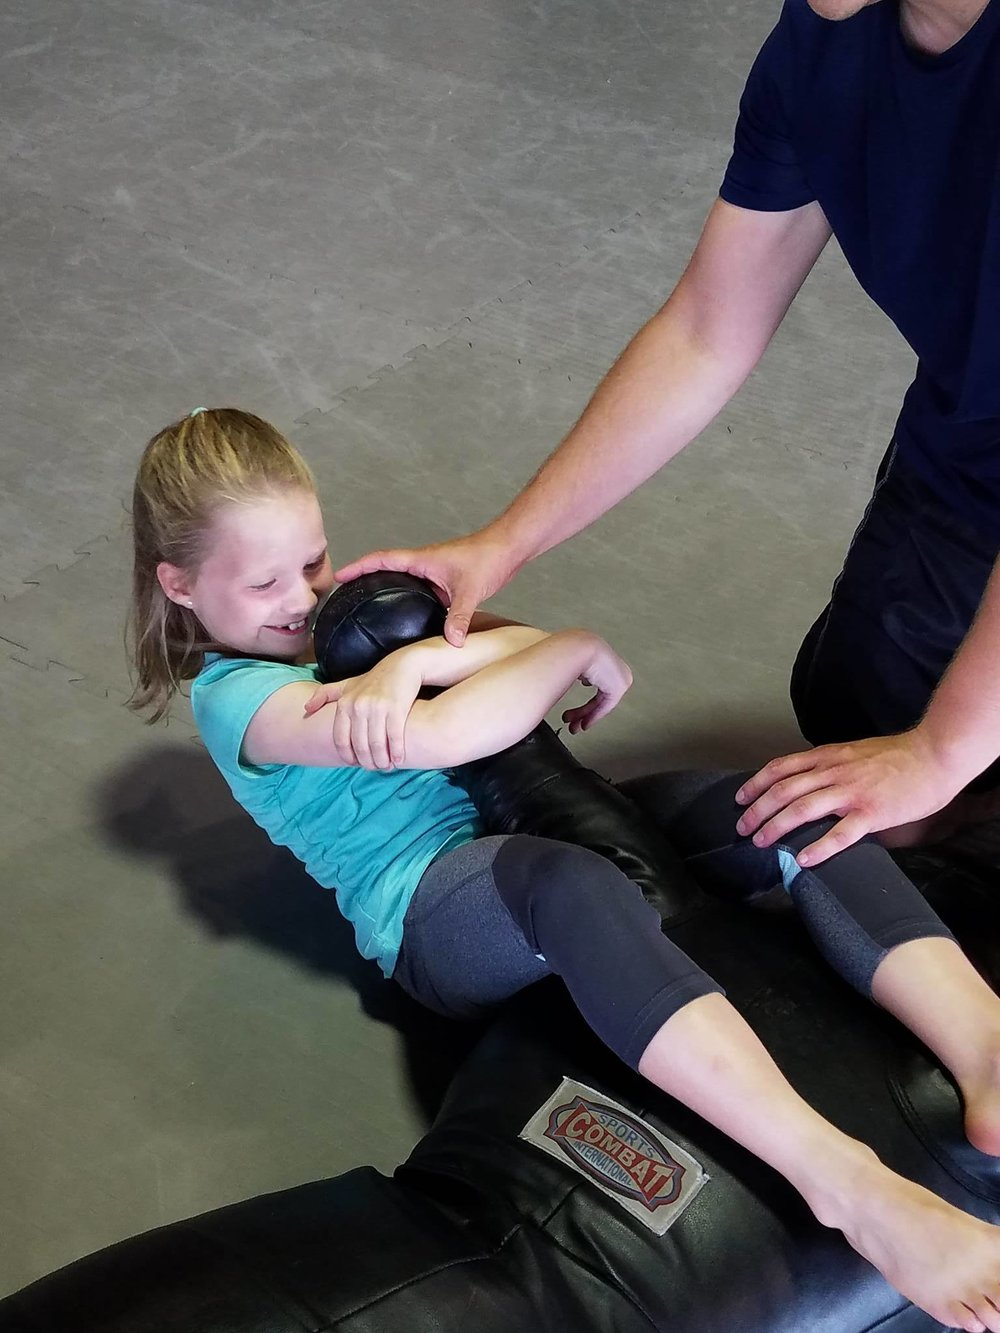 Basic Grappling - Kids will learn how to subdue a bully safely and without injury through basic positions.